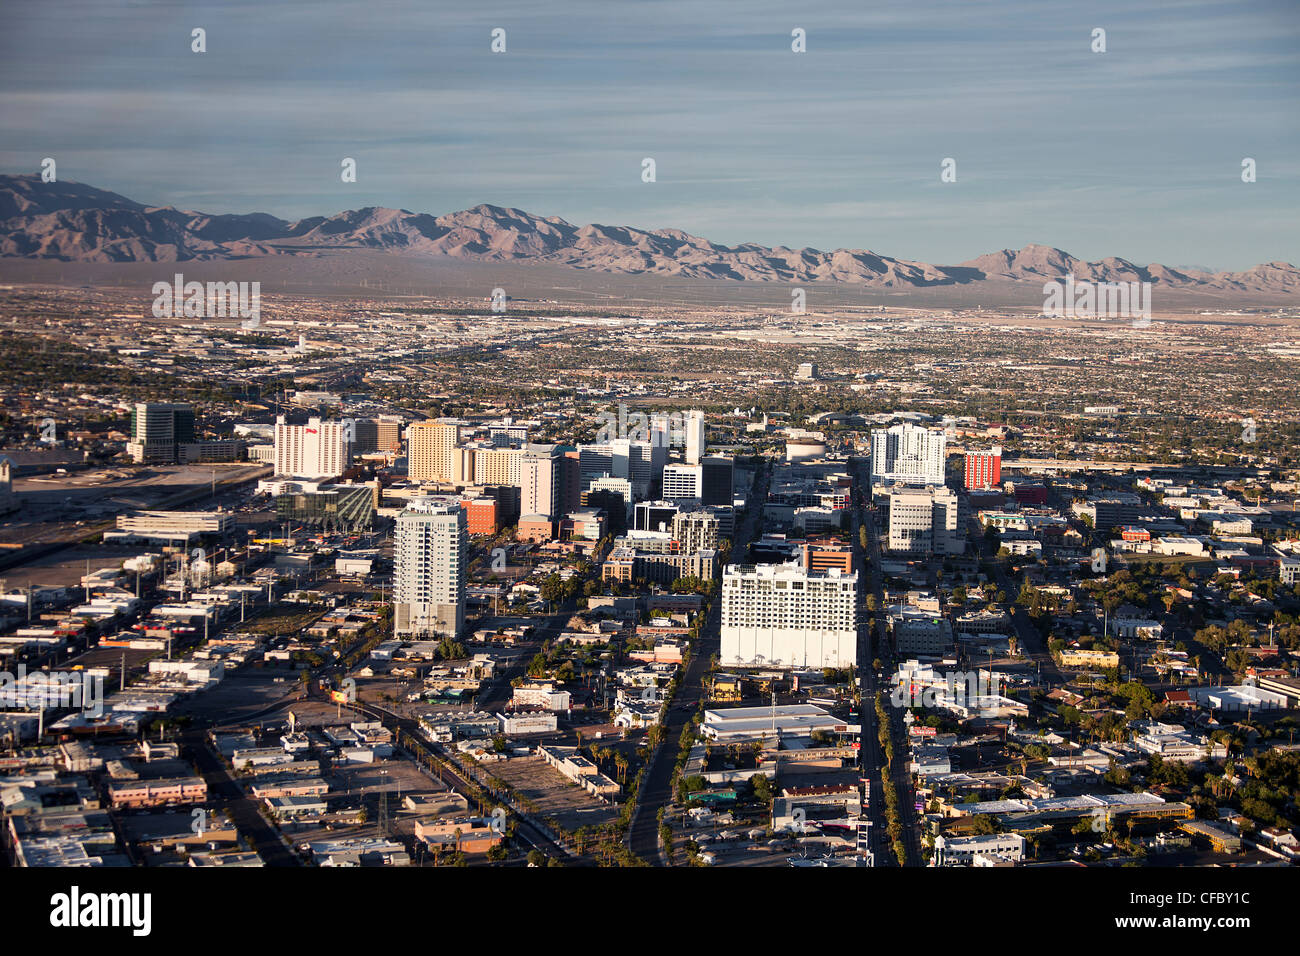 USA, United States, America, Nevada, Las Vegas, City, downtown, aerial view, dry, flat, old town, old Vegas, touristic, - Stock Image